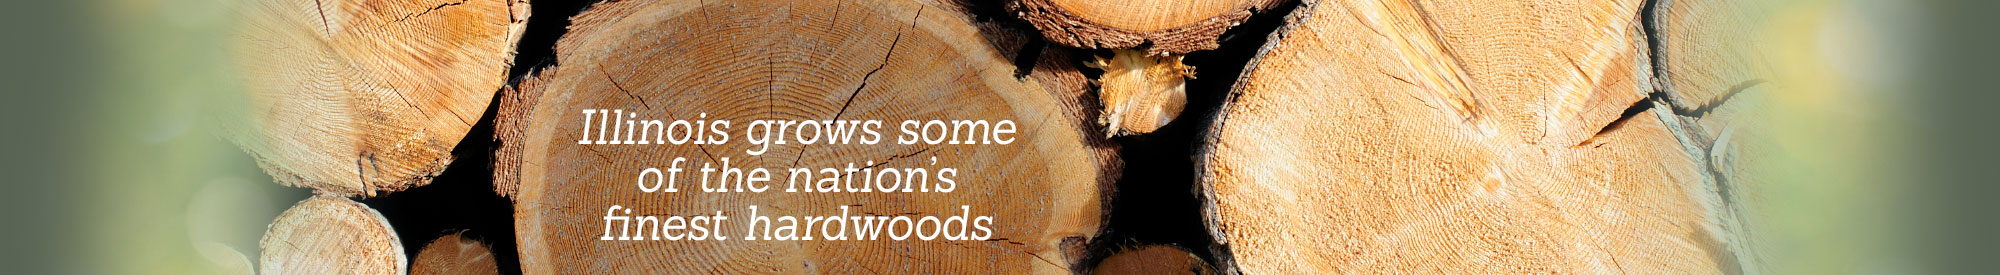 Illinois grows some of the nation's finest hardwoods.